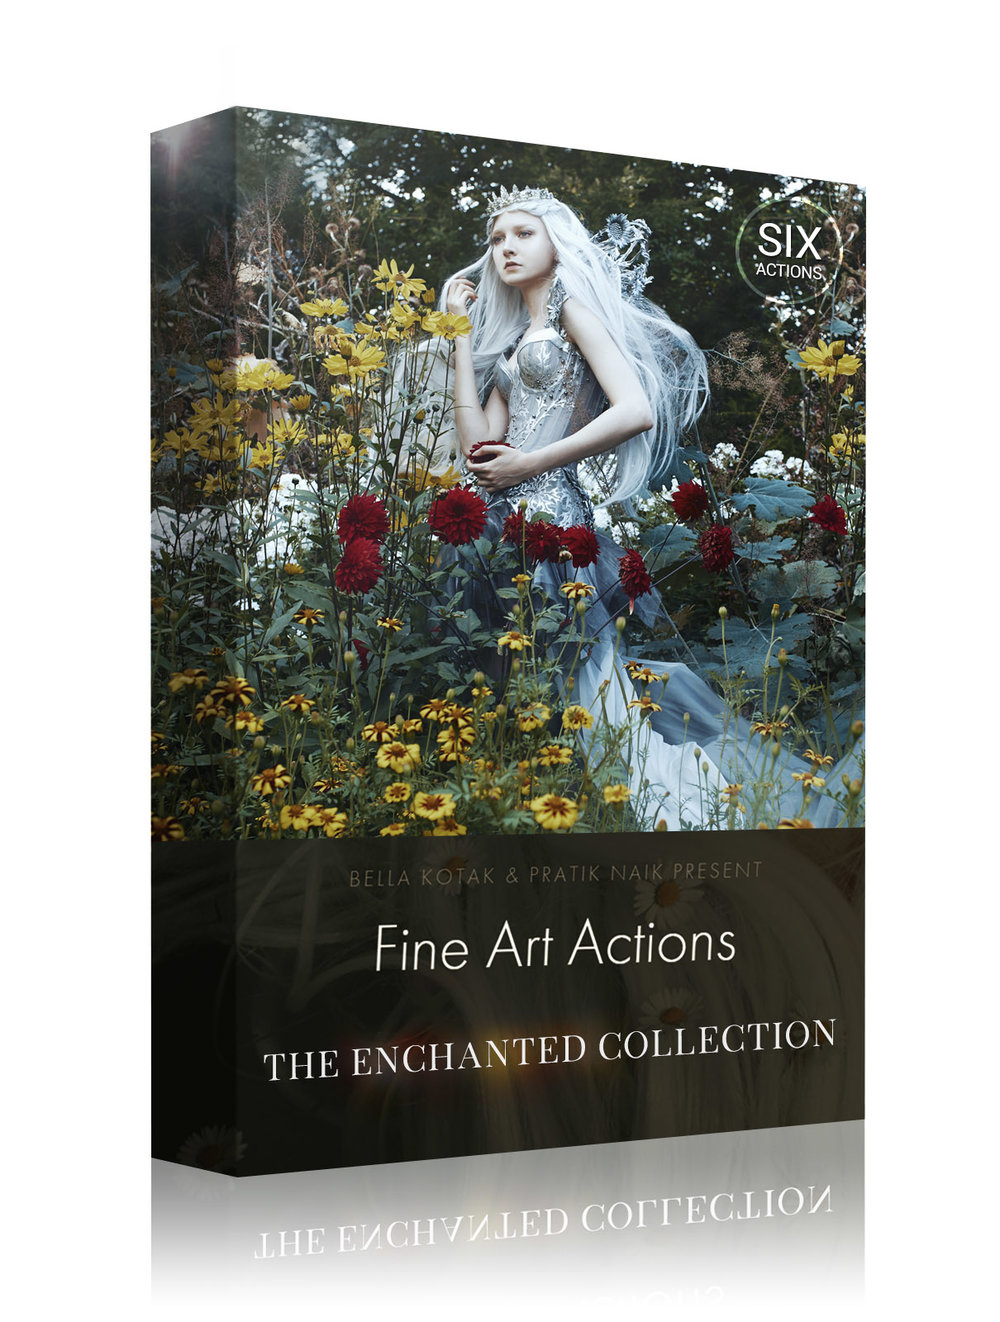 Box Design - The Enchanted Collection.jpg